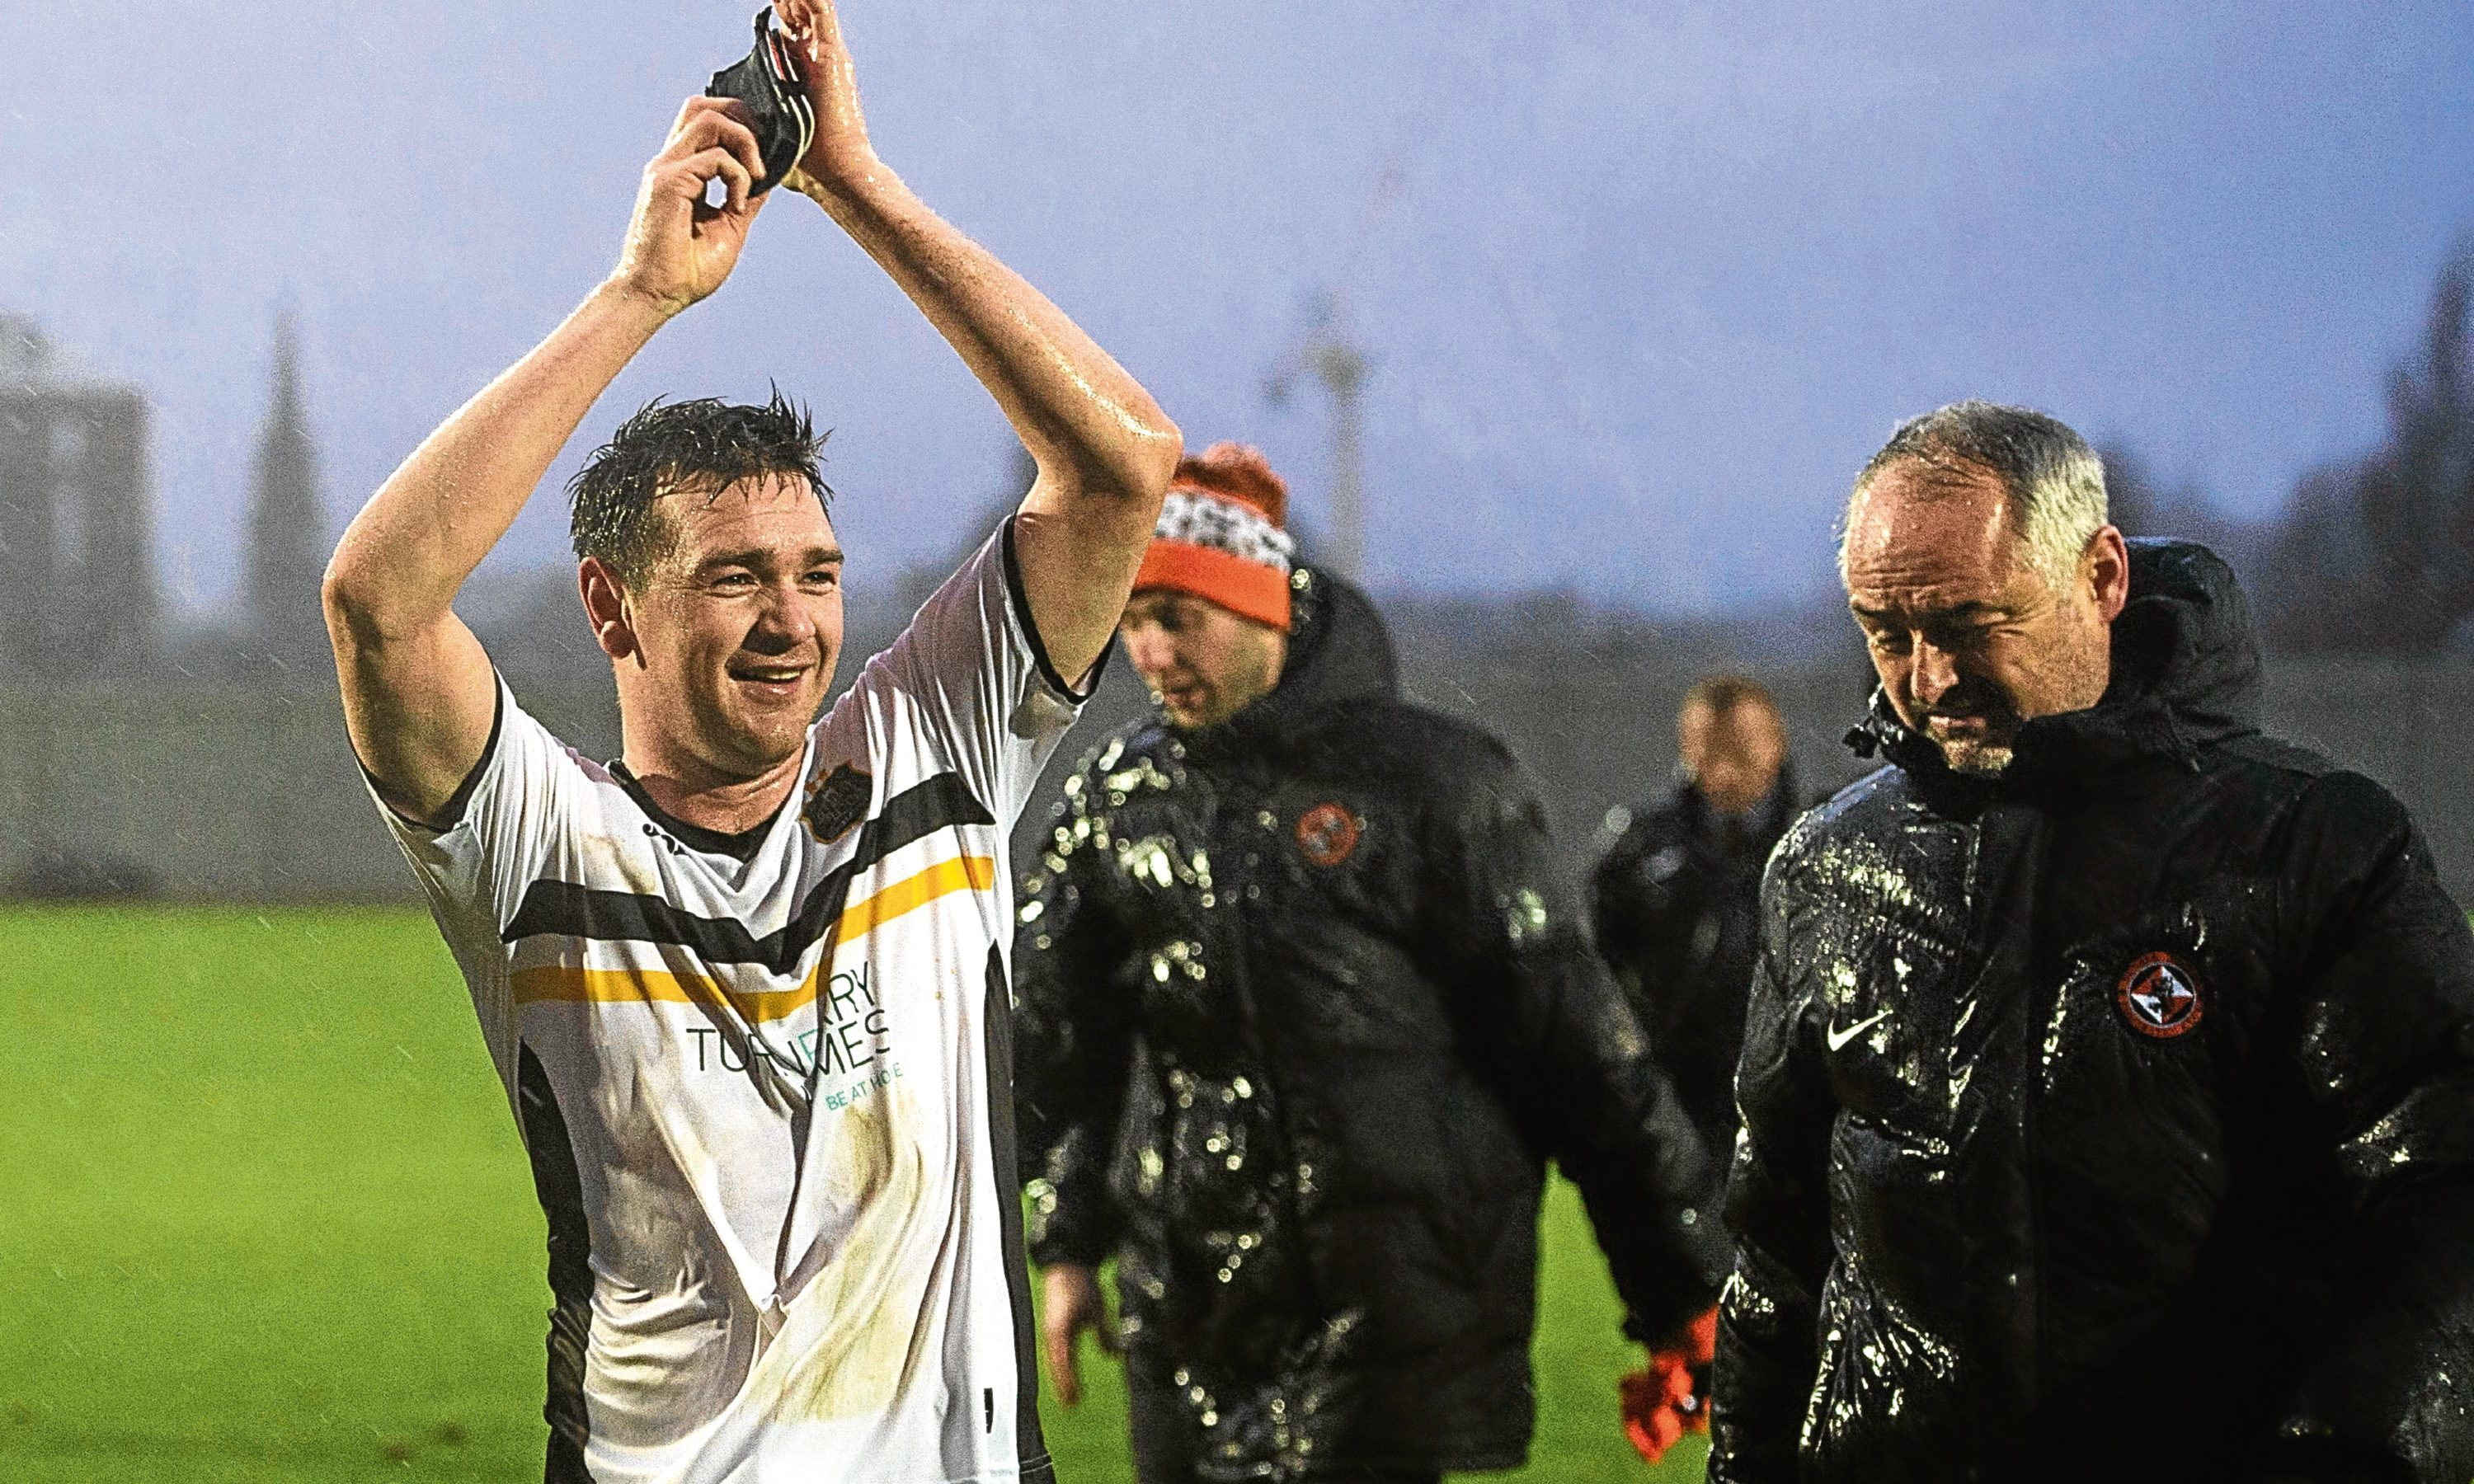 Dundee United boss Ray McKinnon trudges off at Dumbarton as home matchwinner Mark Docherty celebrates.